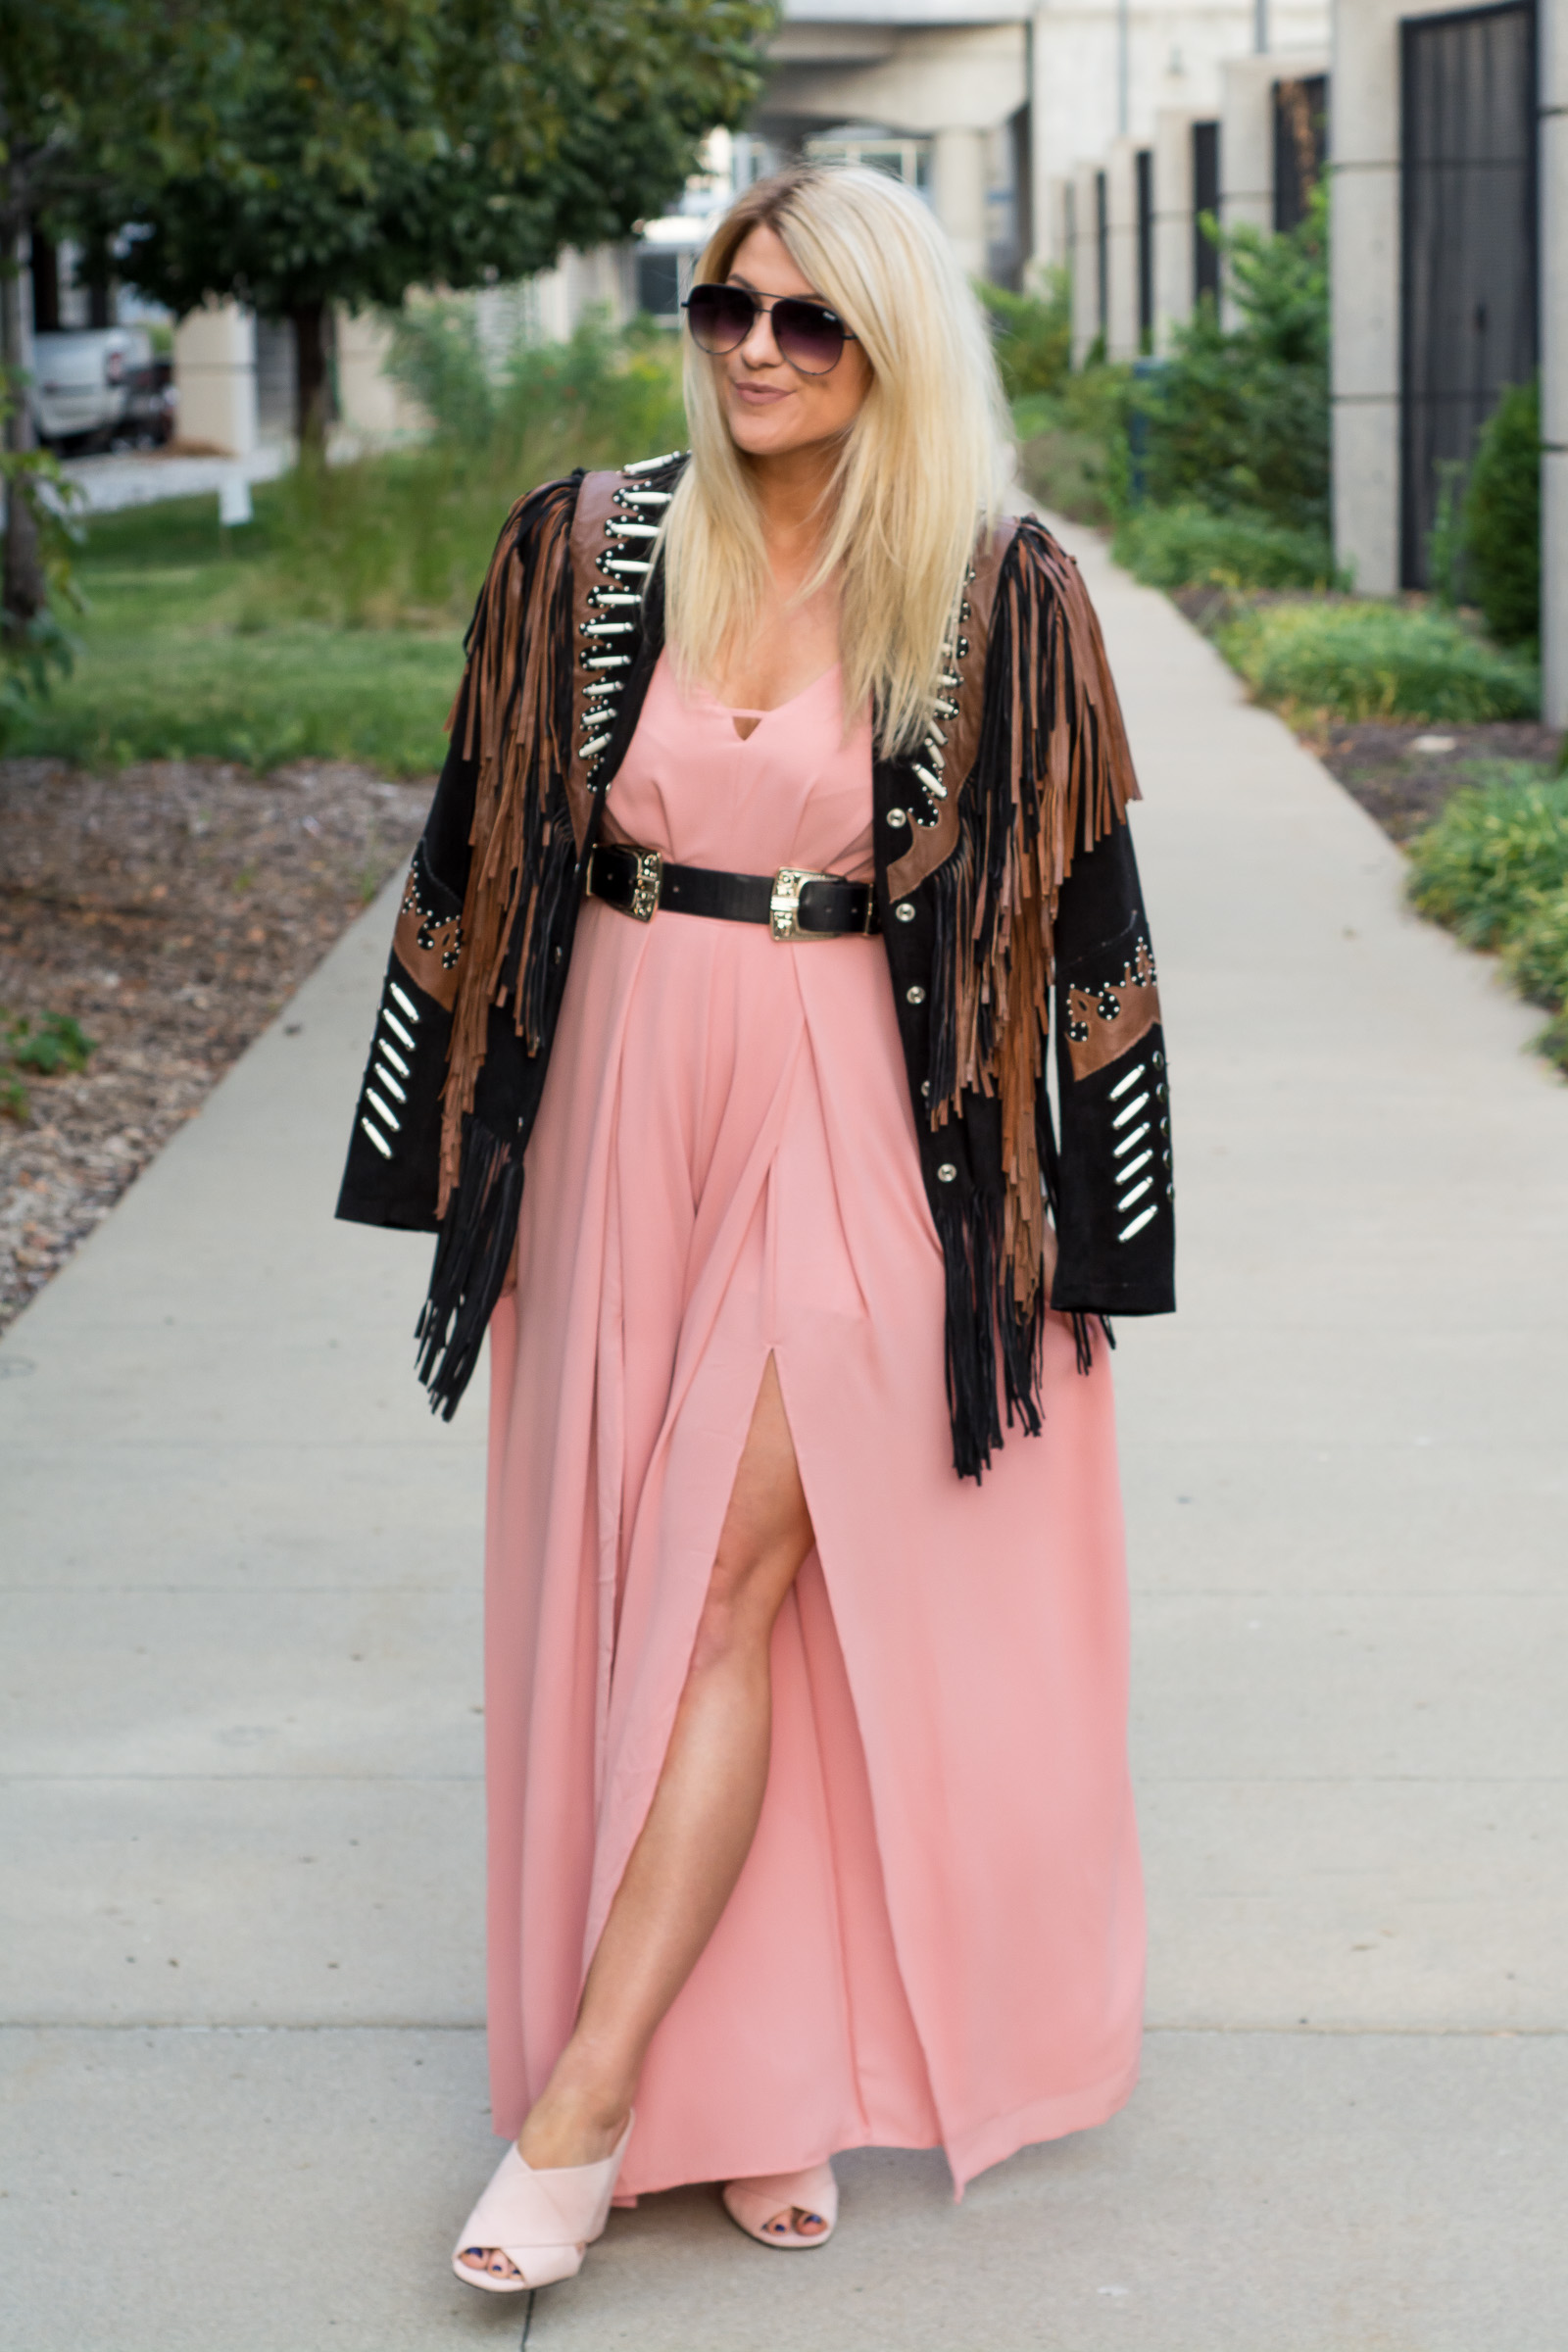 Blush Jumpsuit + Statement Jacket. | Ashley from LSR